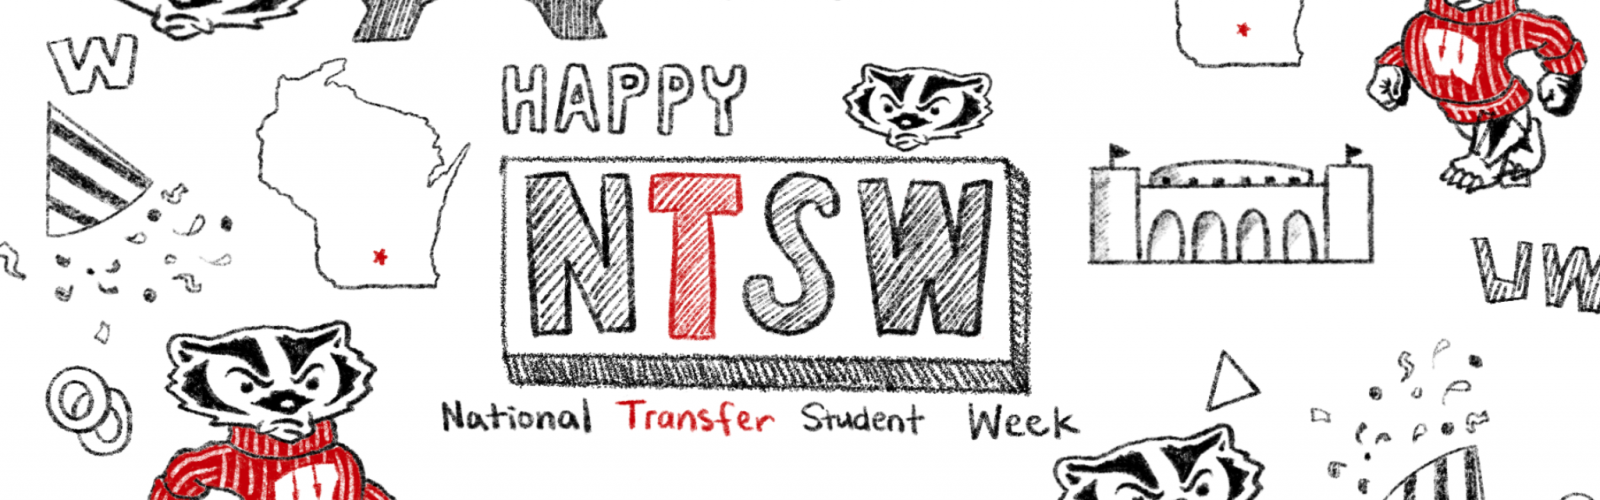 Happy National Transfer Student Week Doodle